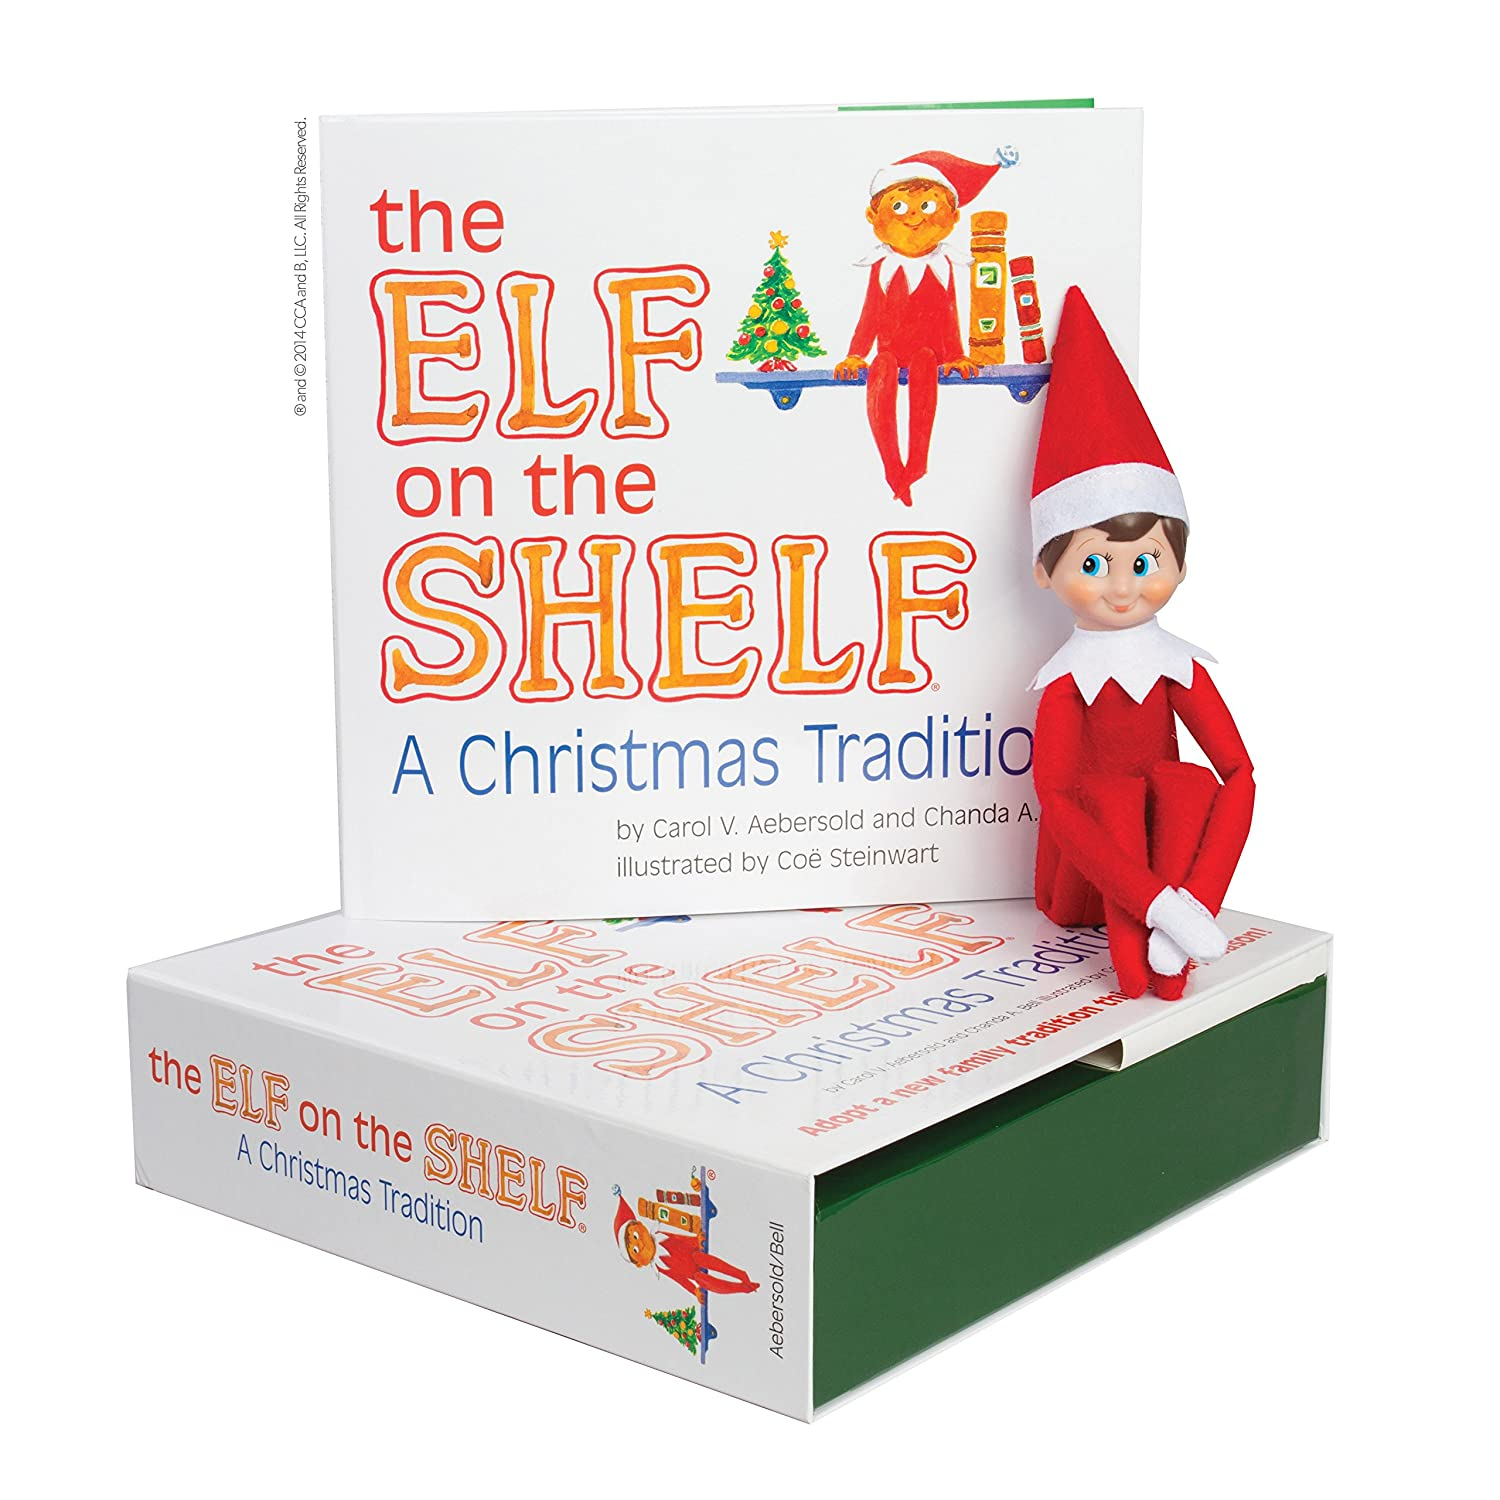 Amazon.com: The Elf on the Shelf: A Christmas Tradition : Chanda A ...